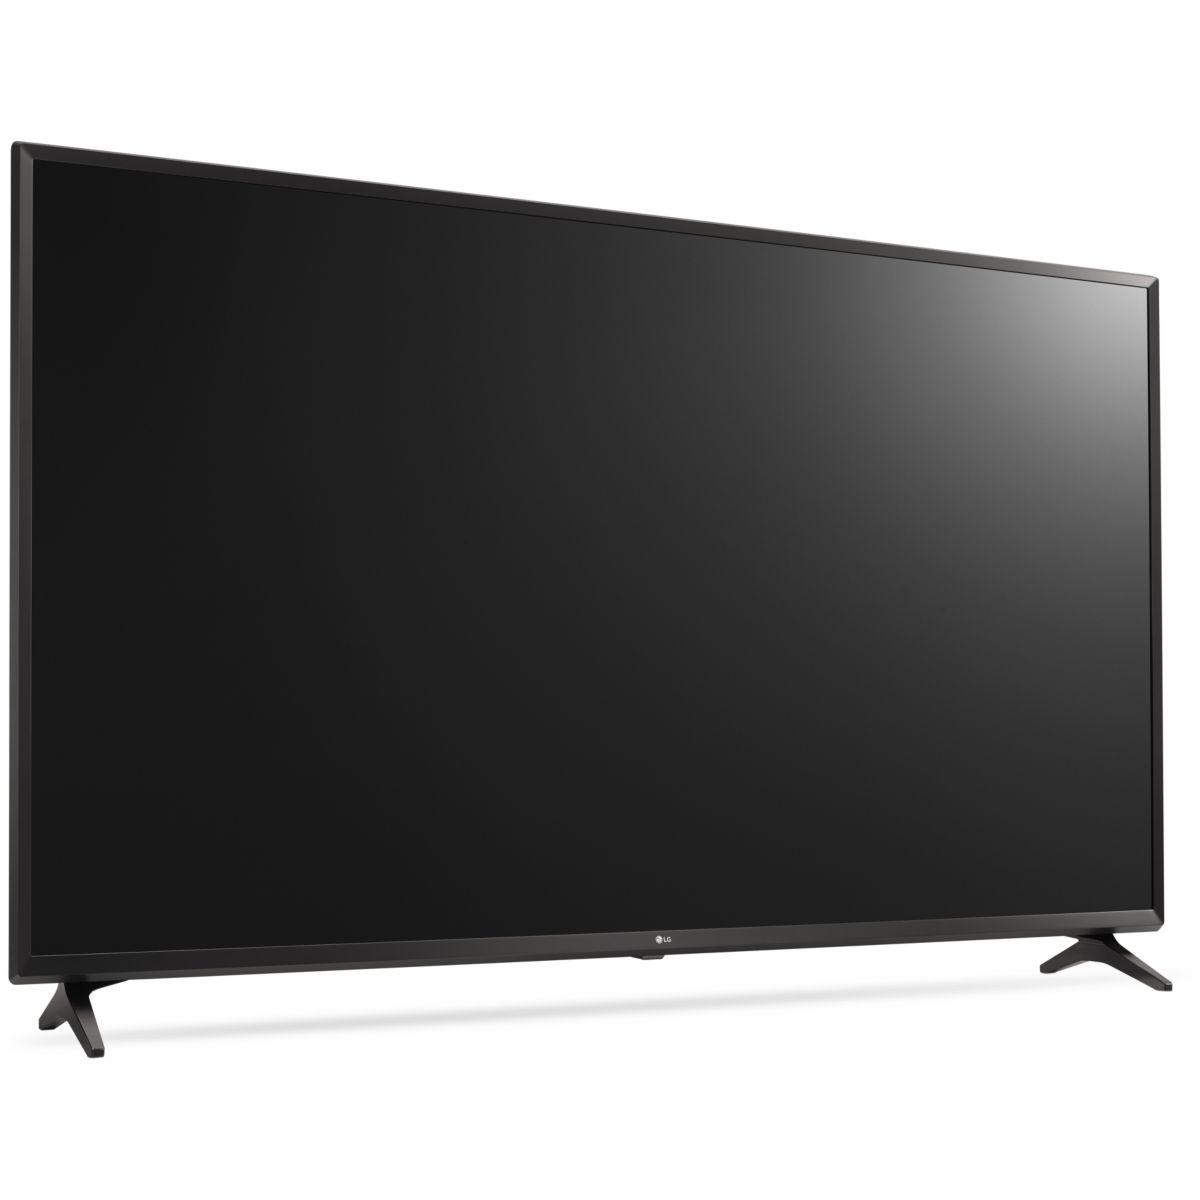 smart tv led 4k ultra hd 123 cm lg 49uj630v reconditionn back market. Black Bedroom Furniture Sets. Home Design Ideas